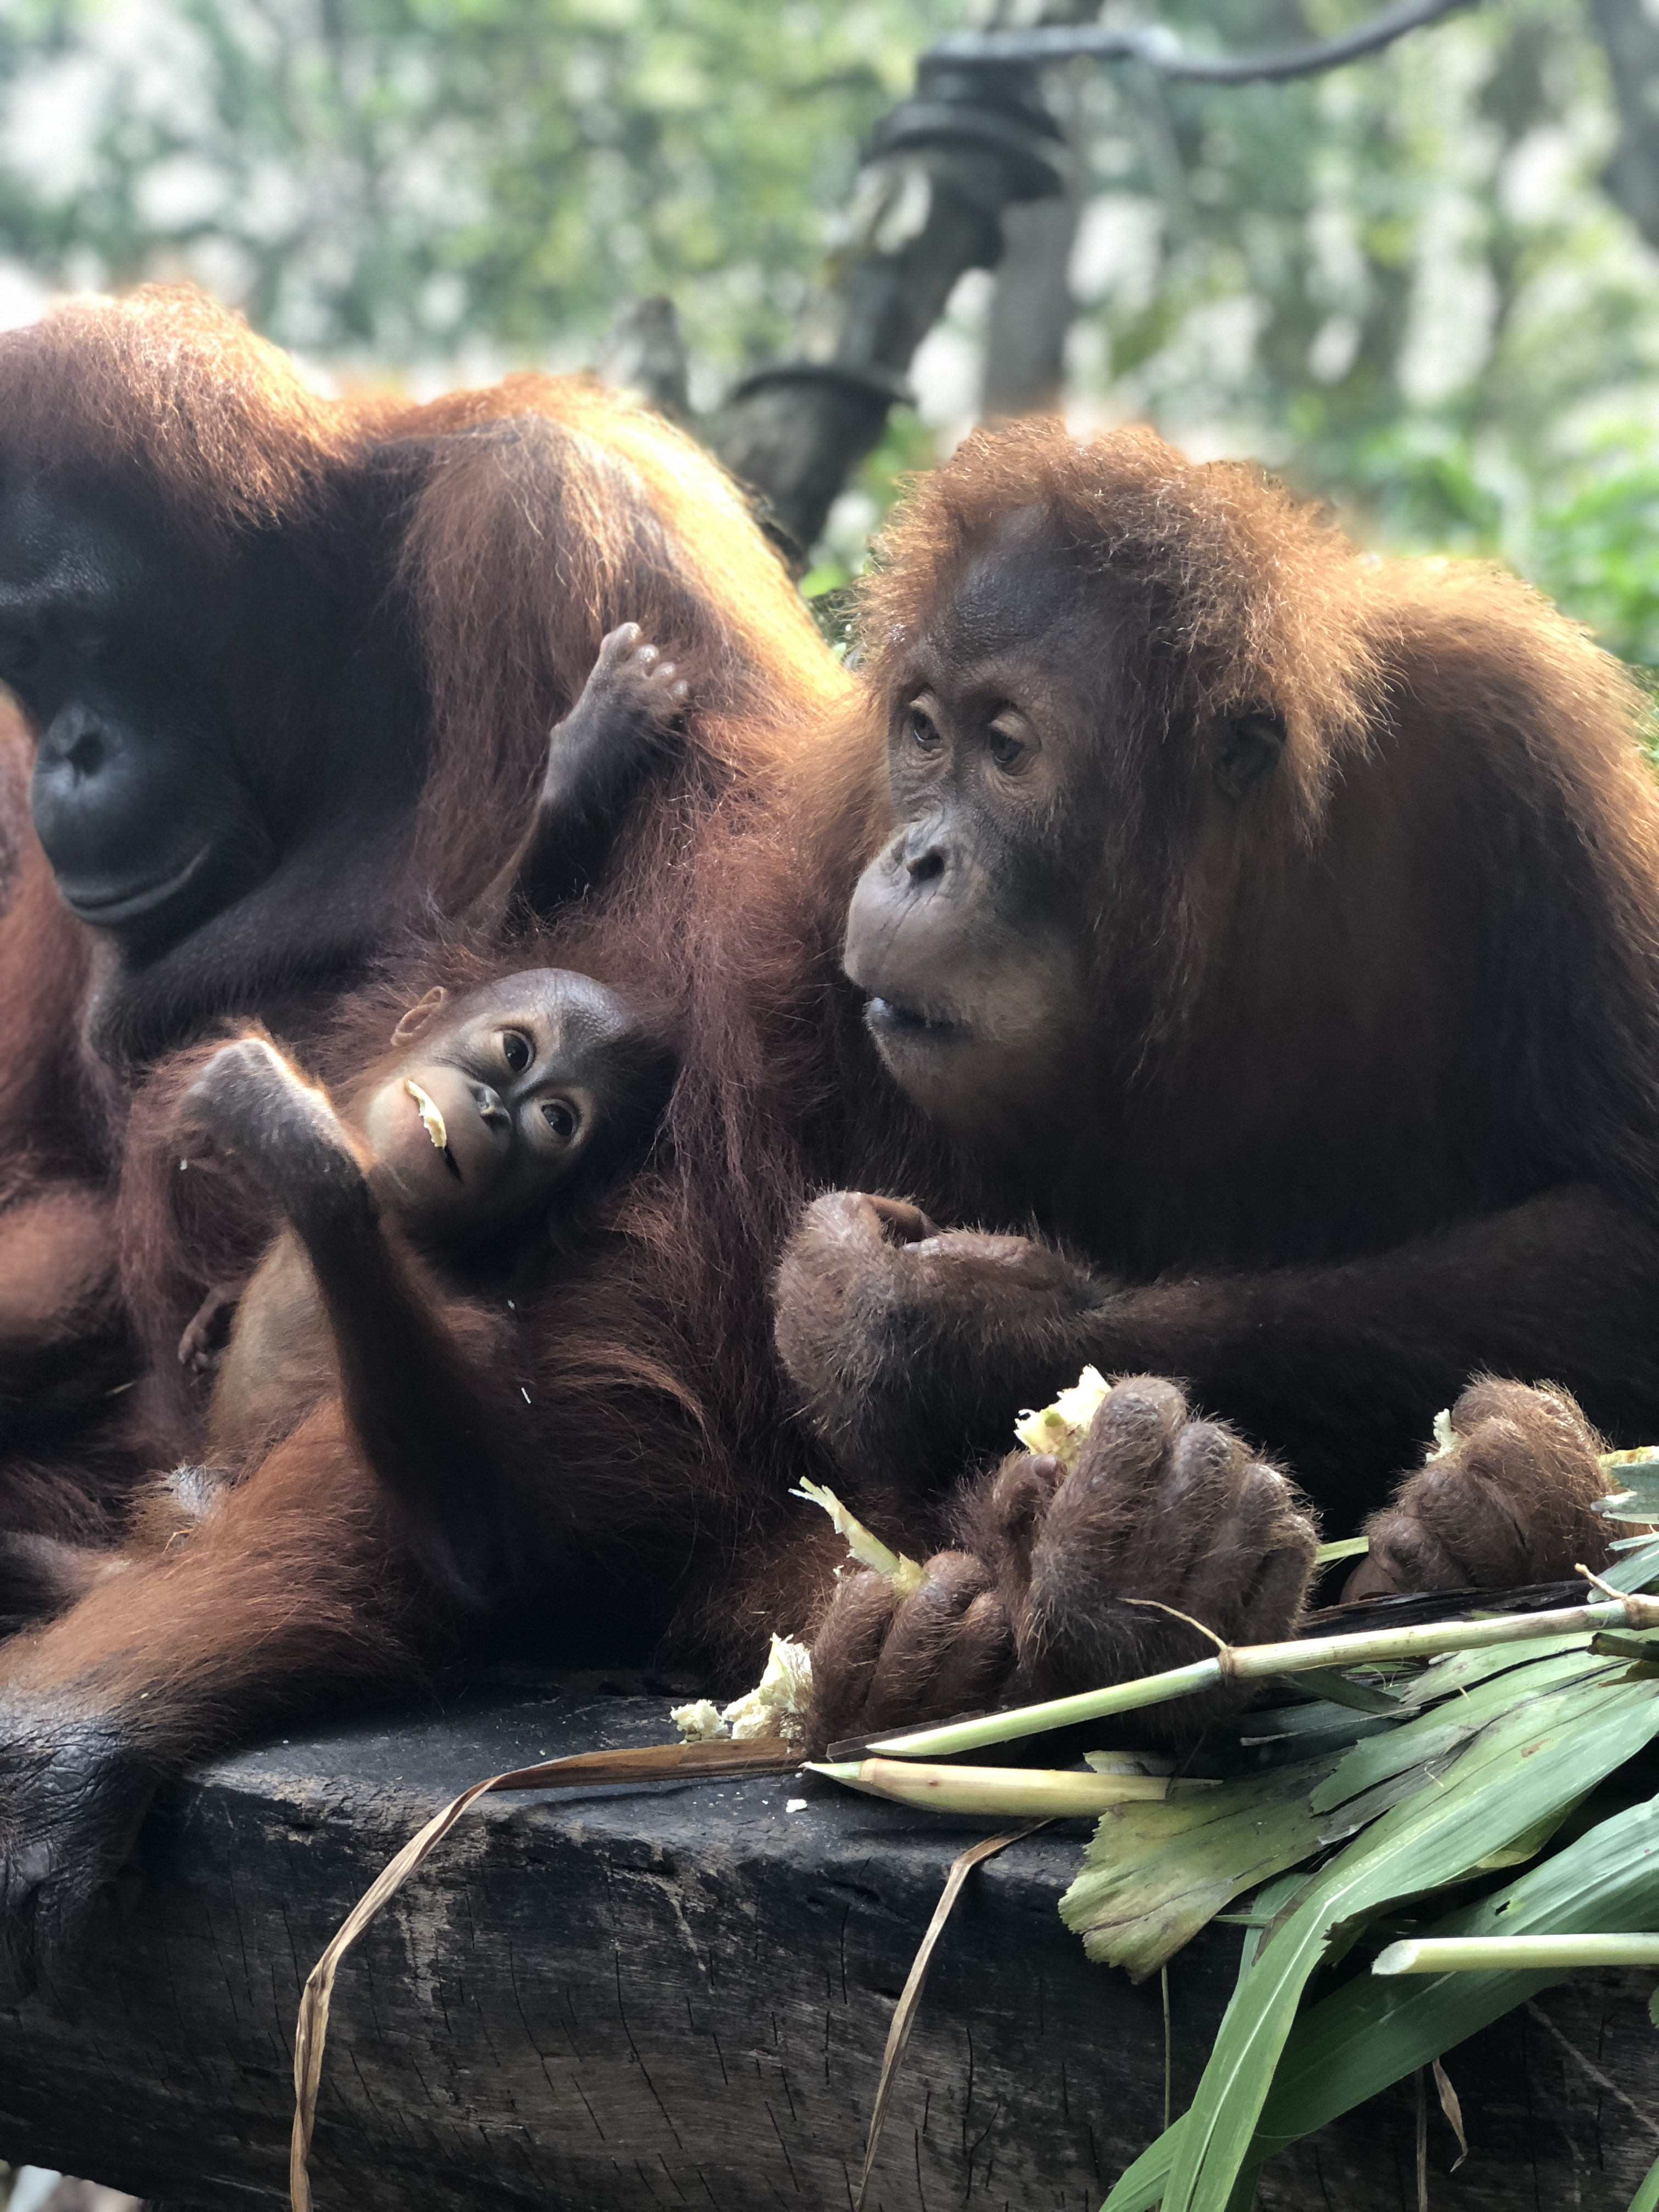 Breakfast with the Orangutans at the Singapore Zoo